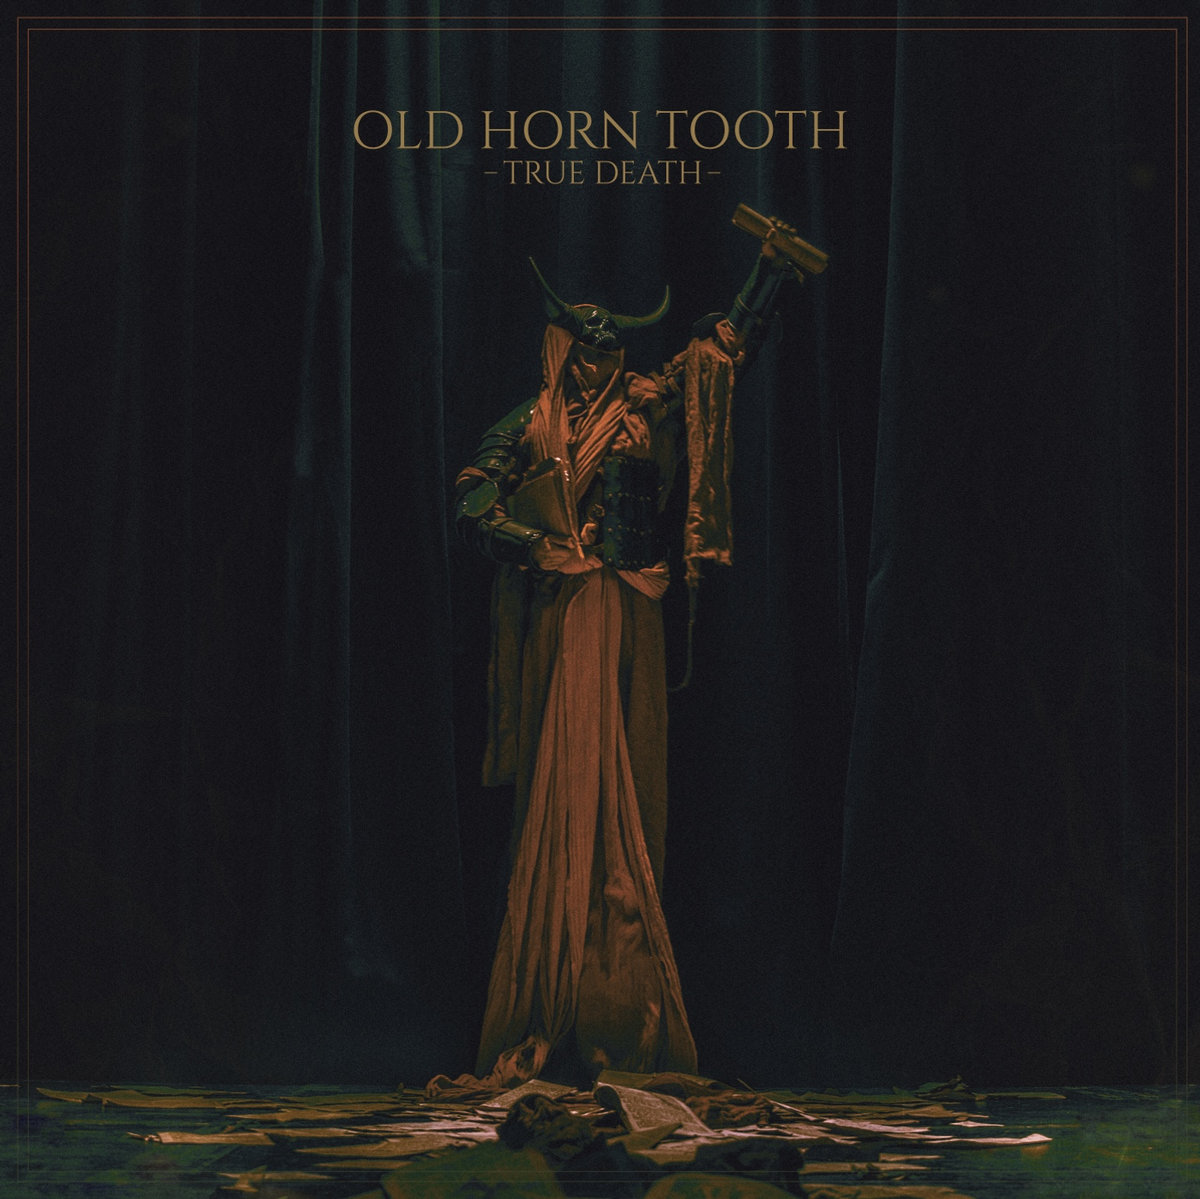 Old Horn Tooth - True Death